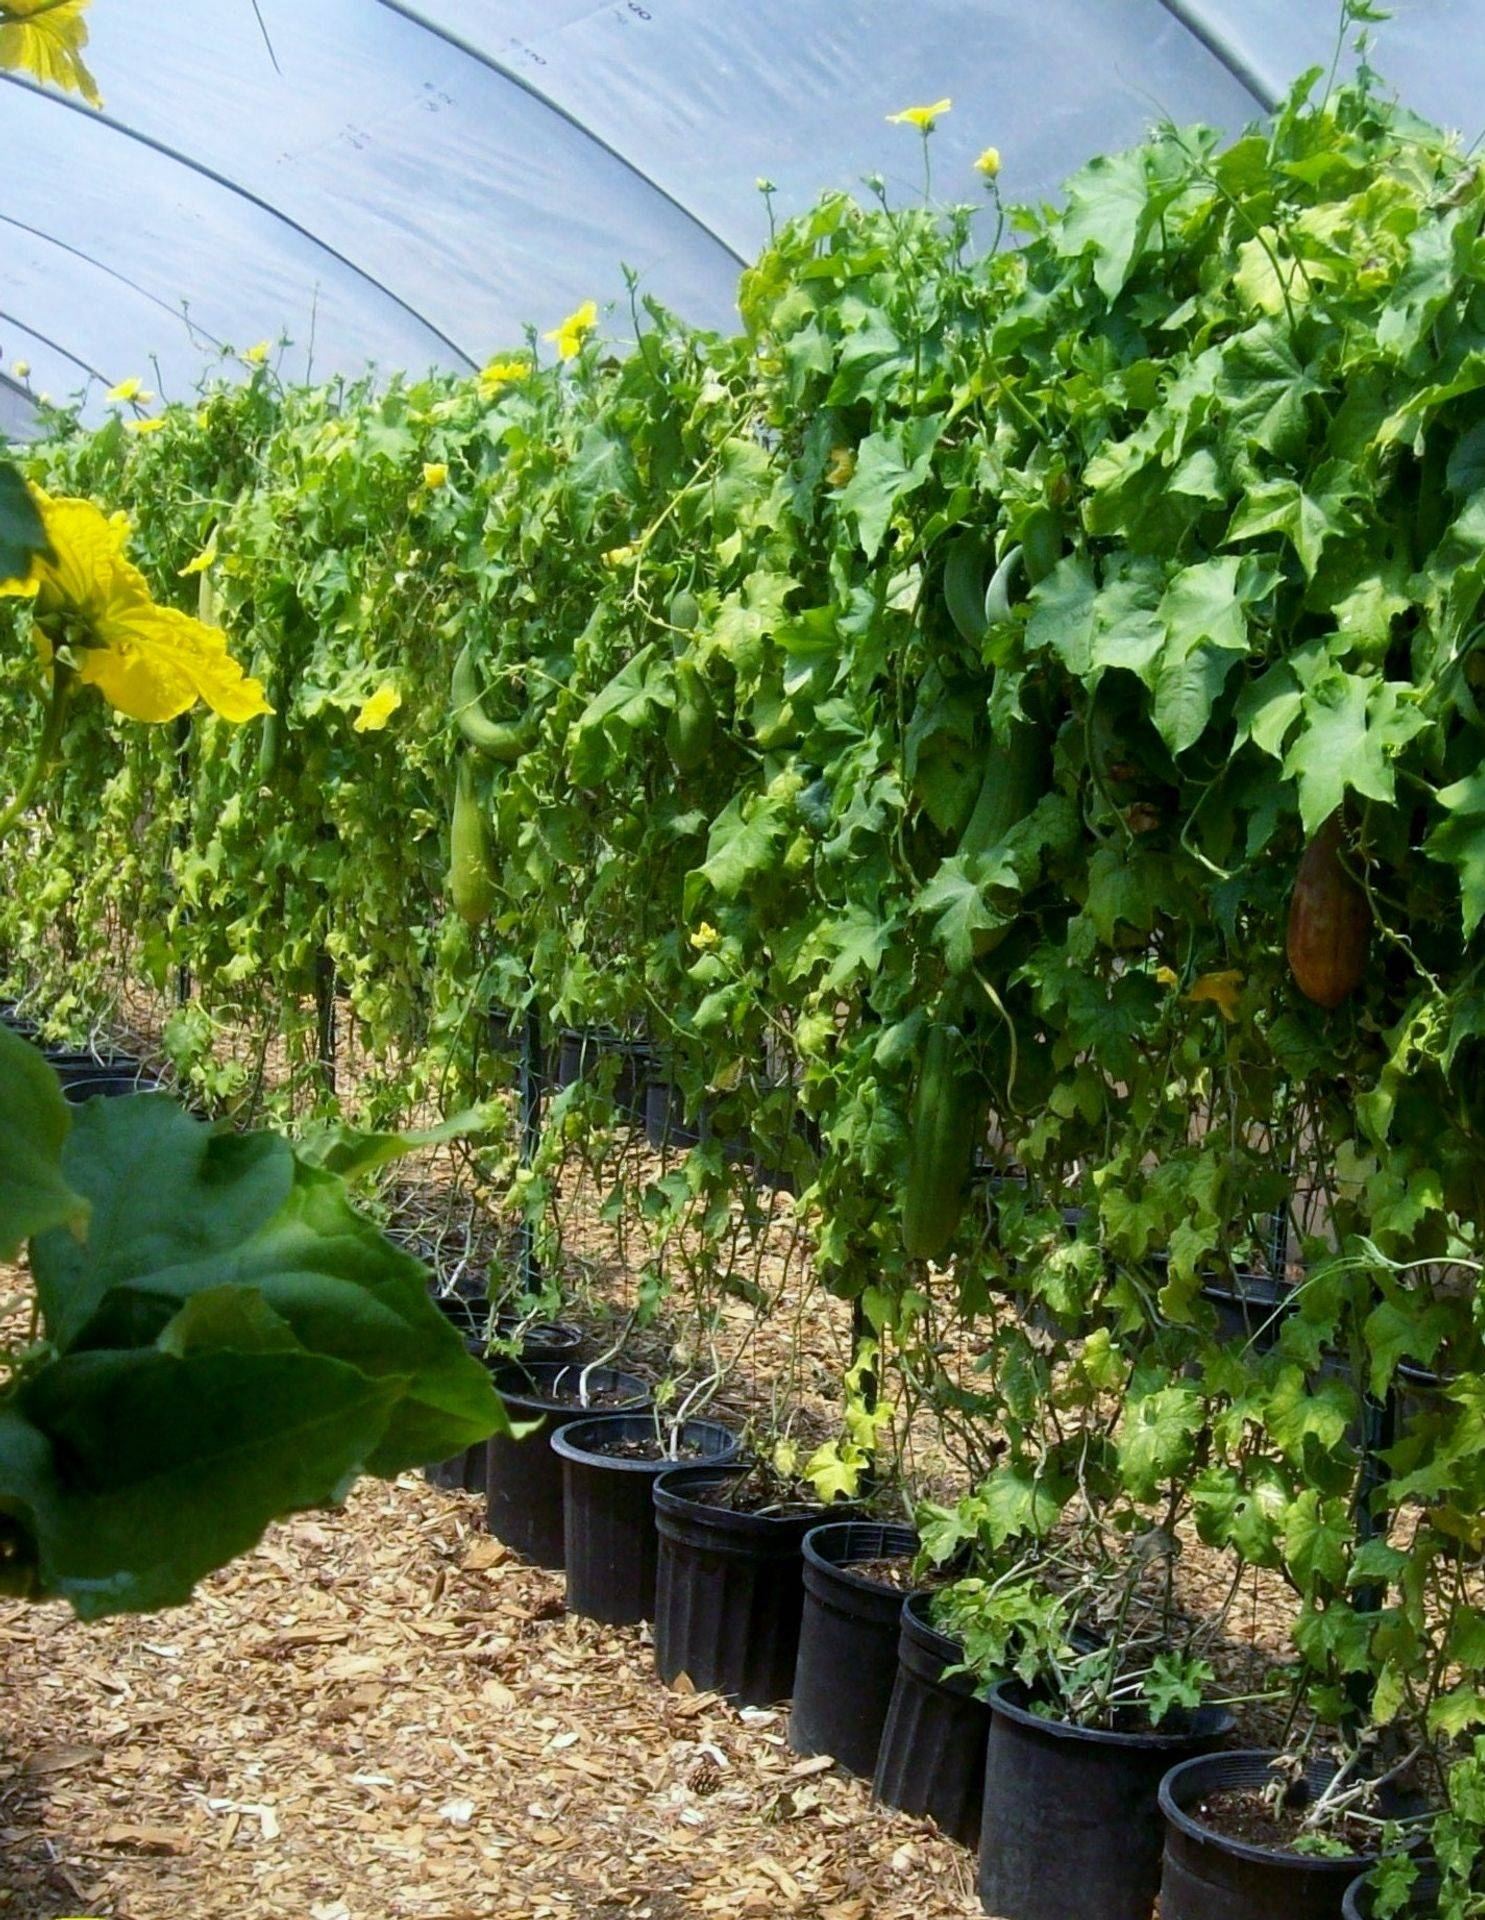 View of Luffa Vines